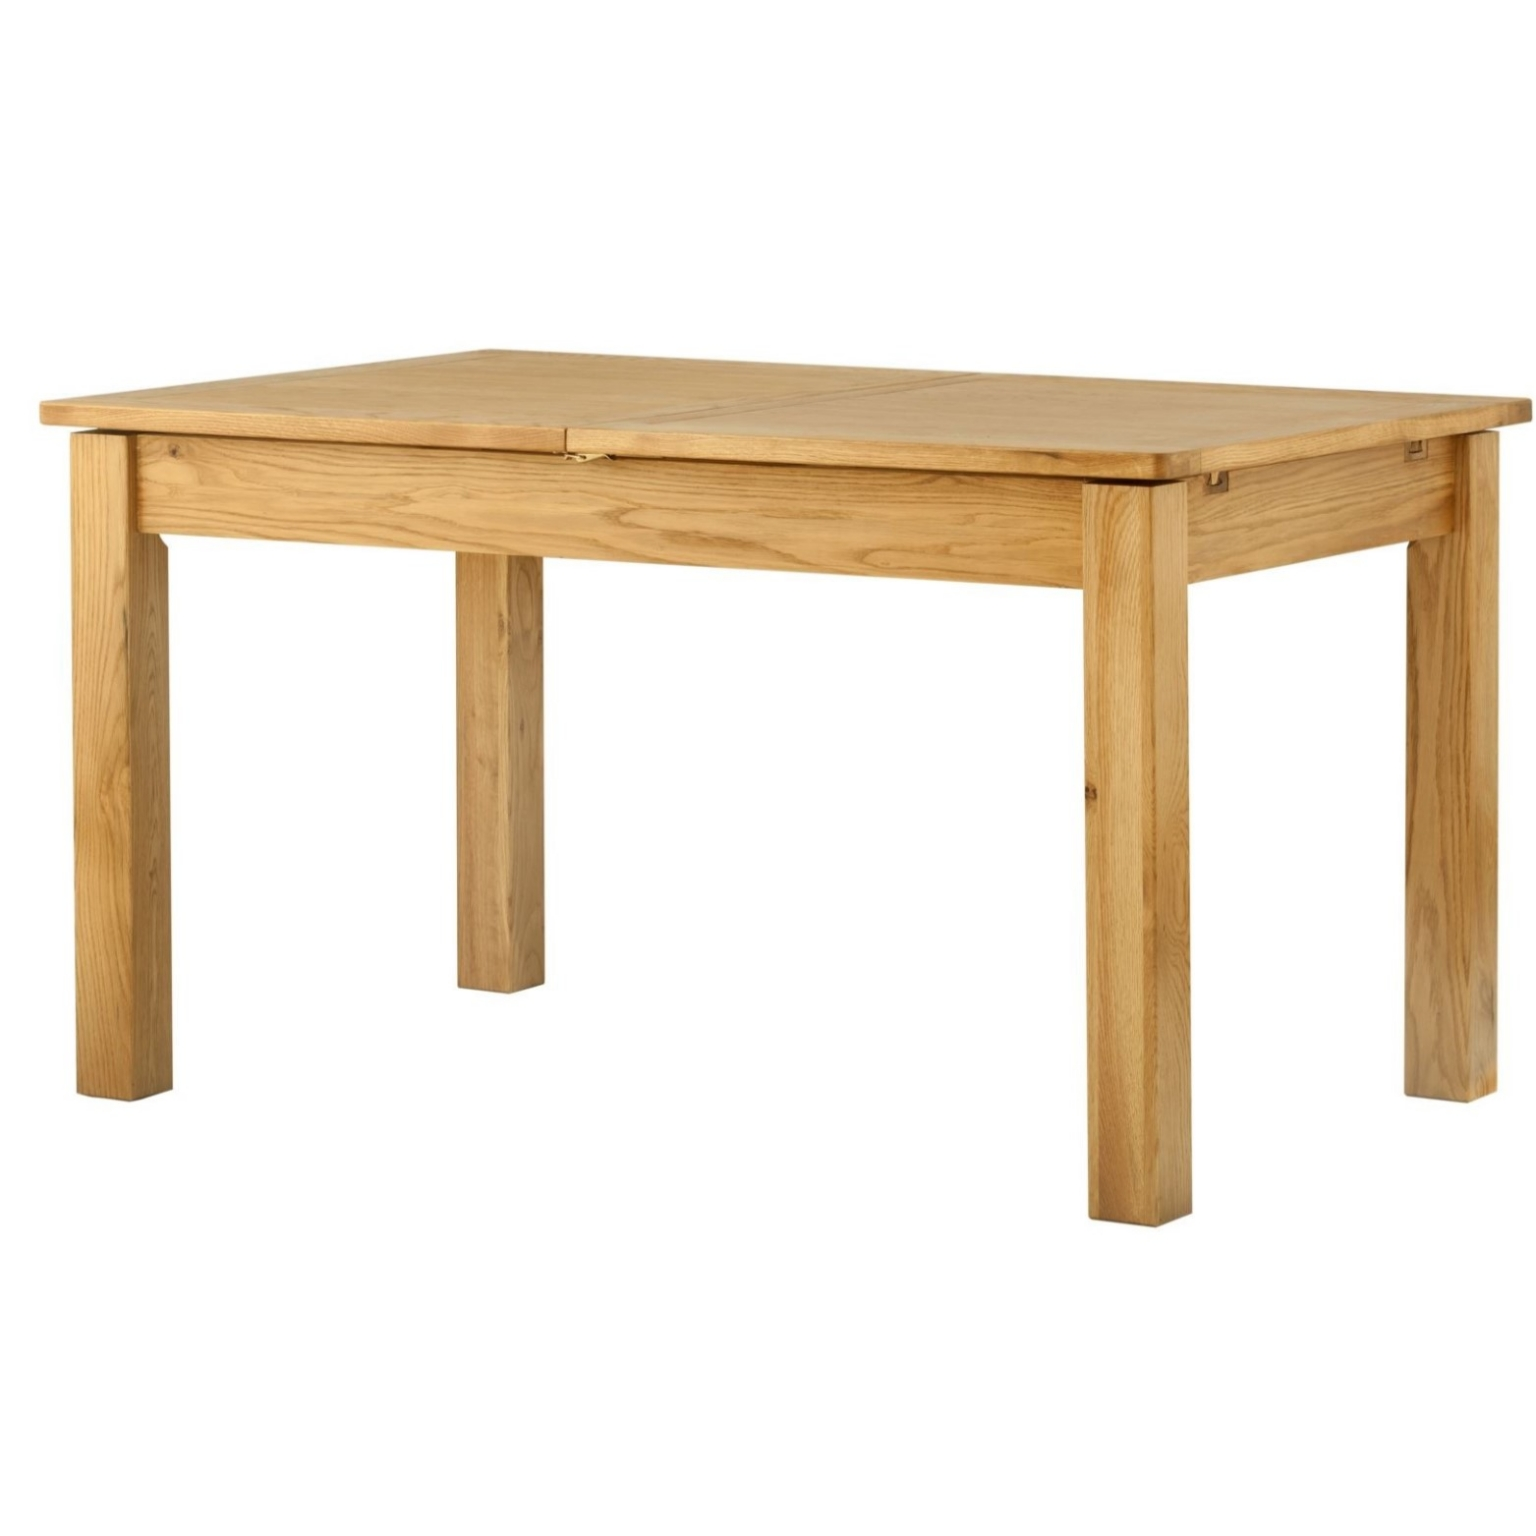 Cotswold Dining Table with Leaf - Oak